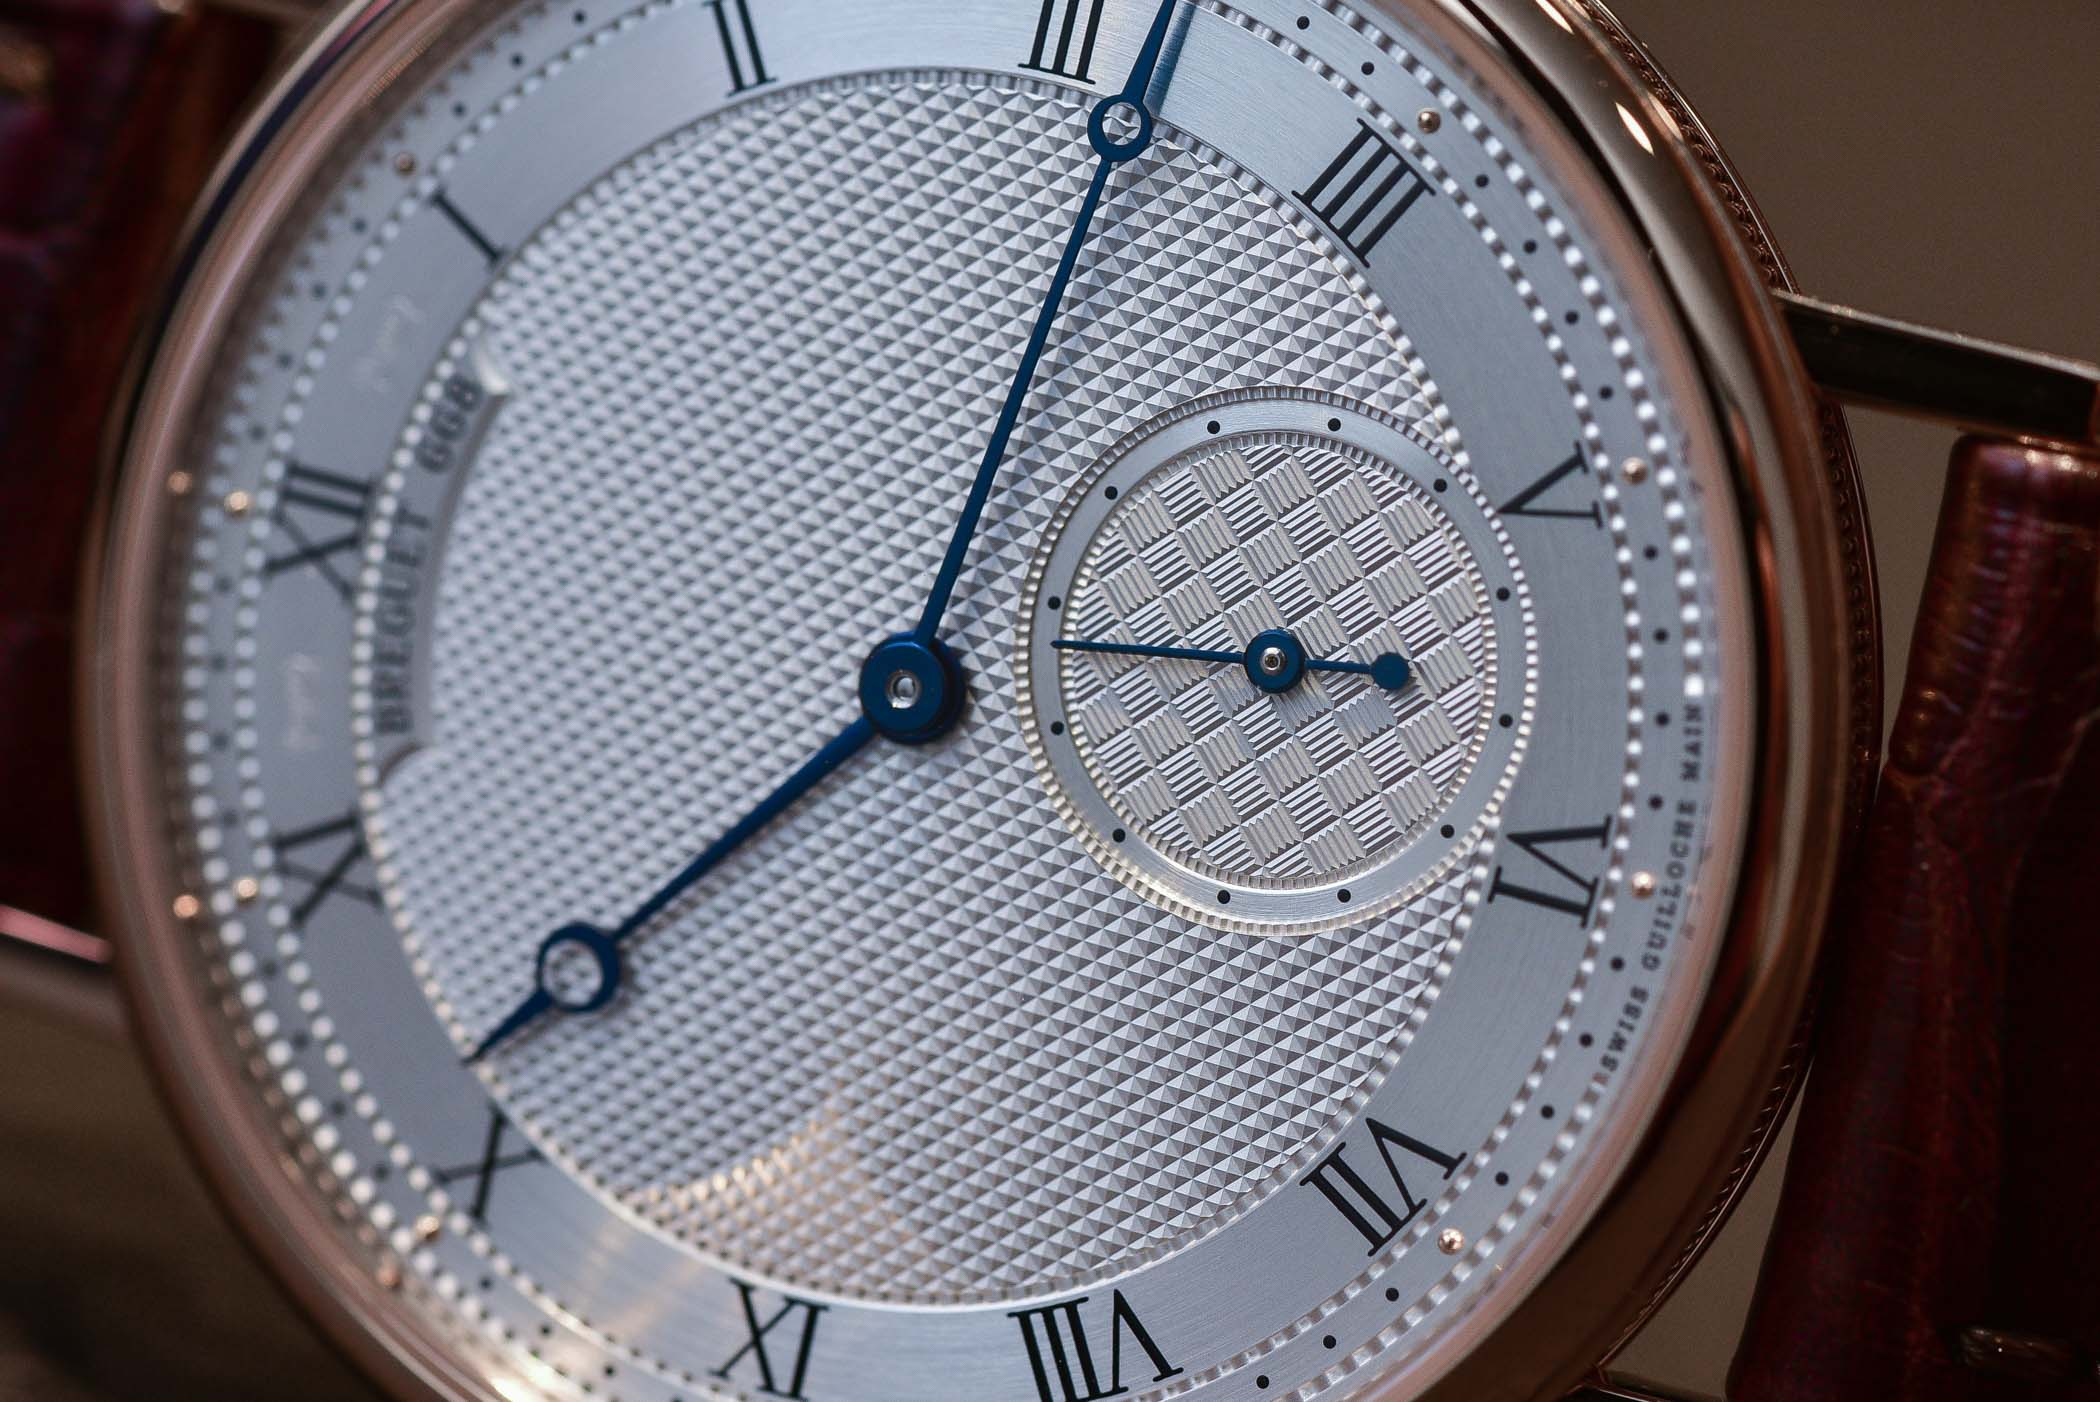 Breguet Guillochage Engine Turning technique in-depth - 12